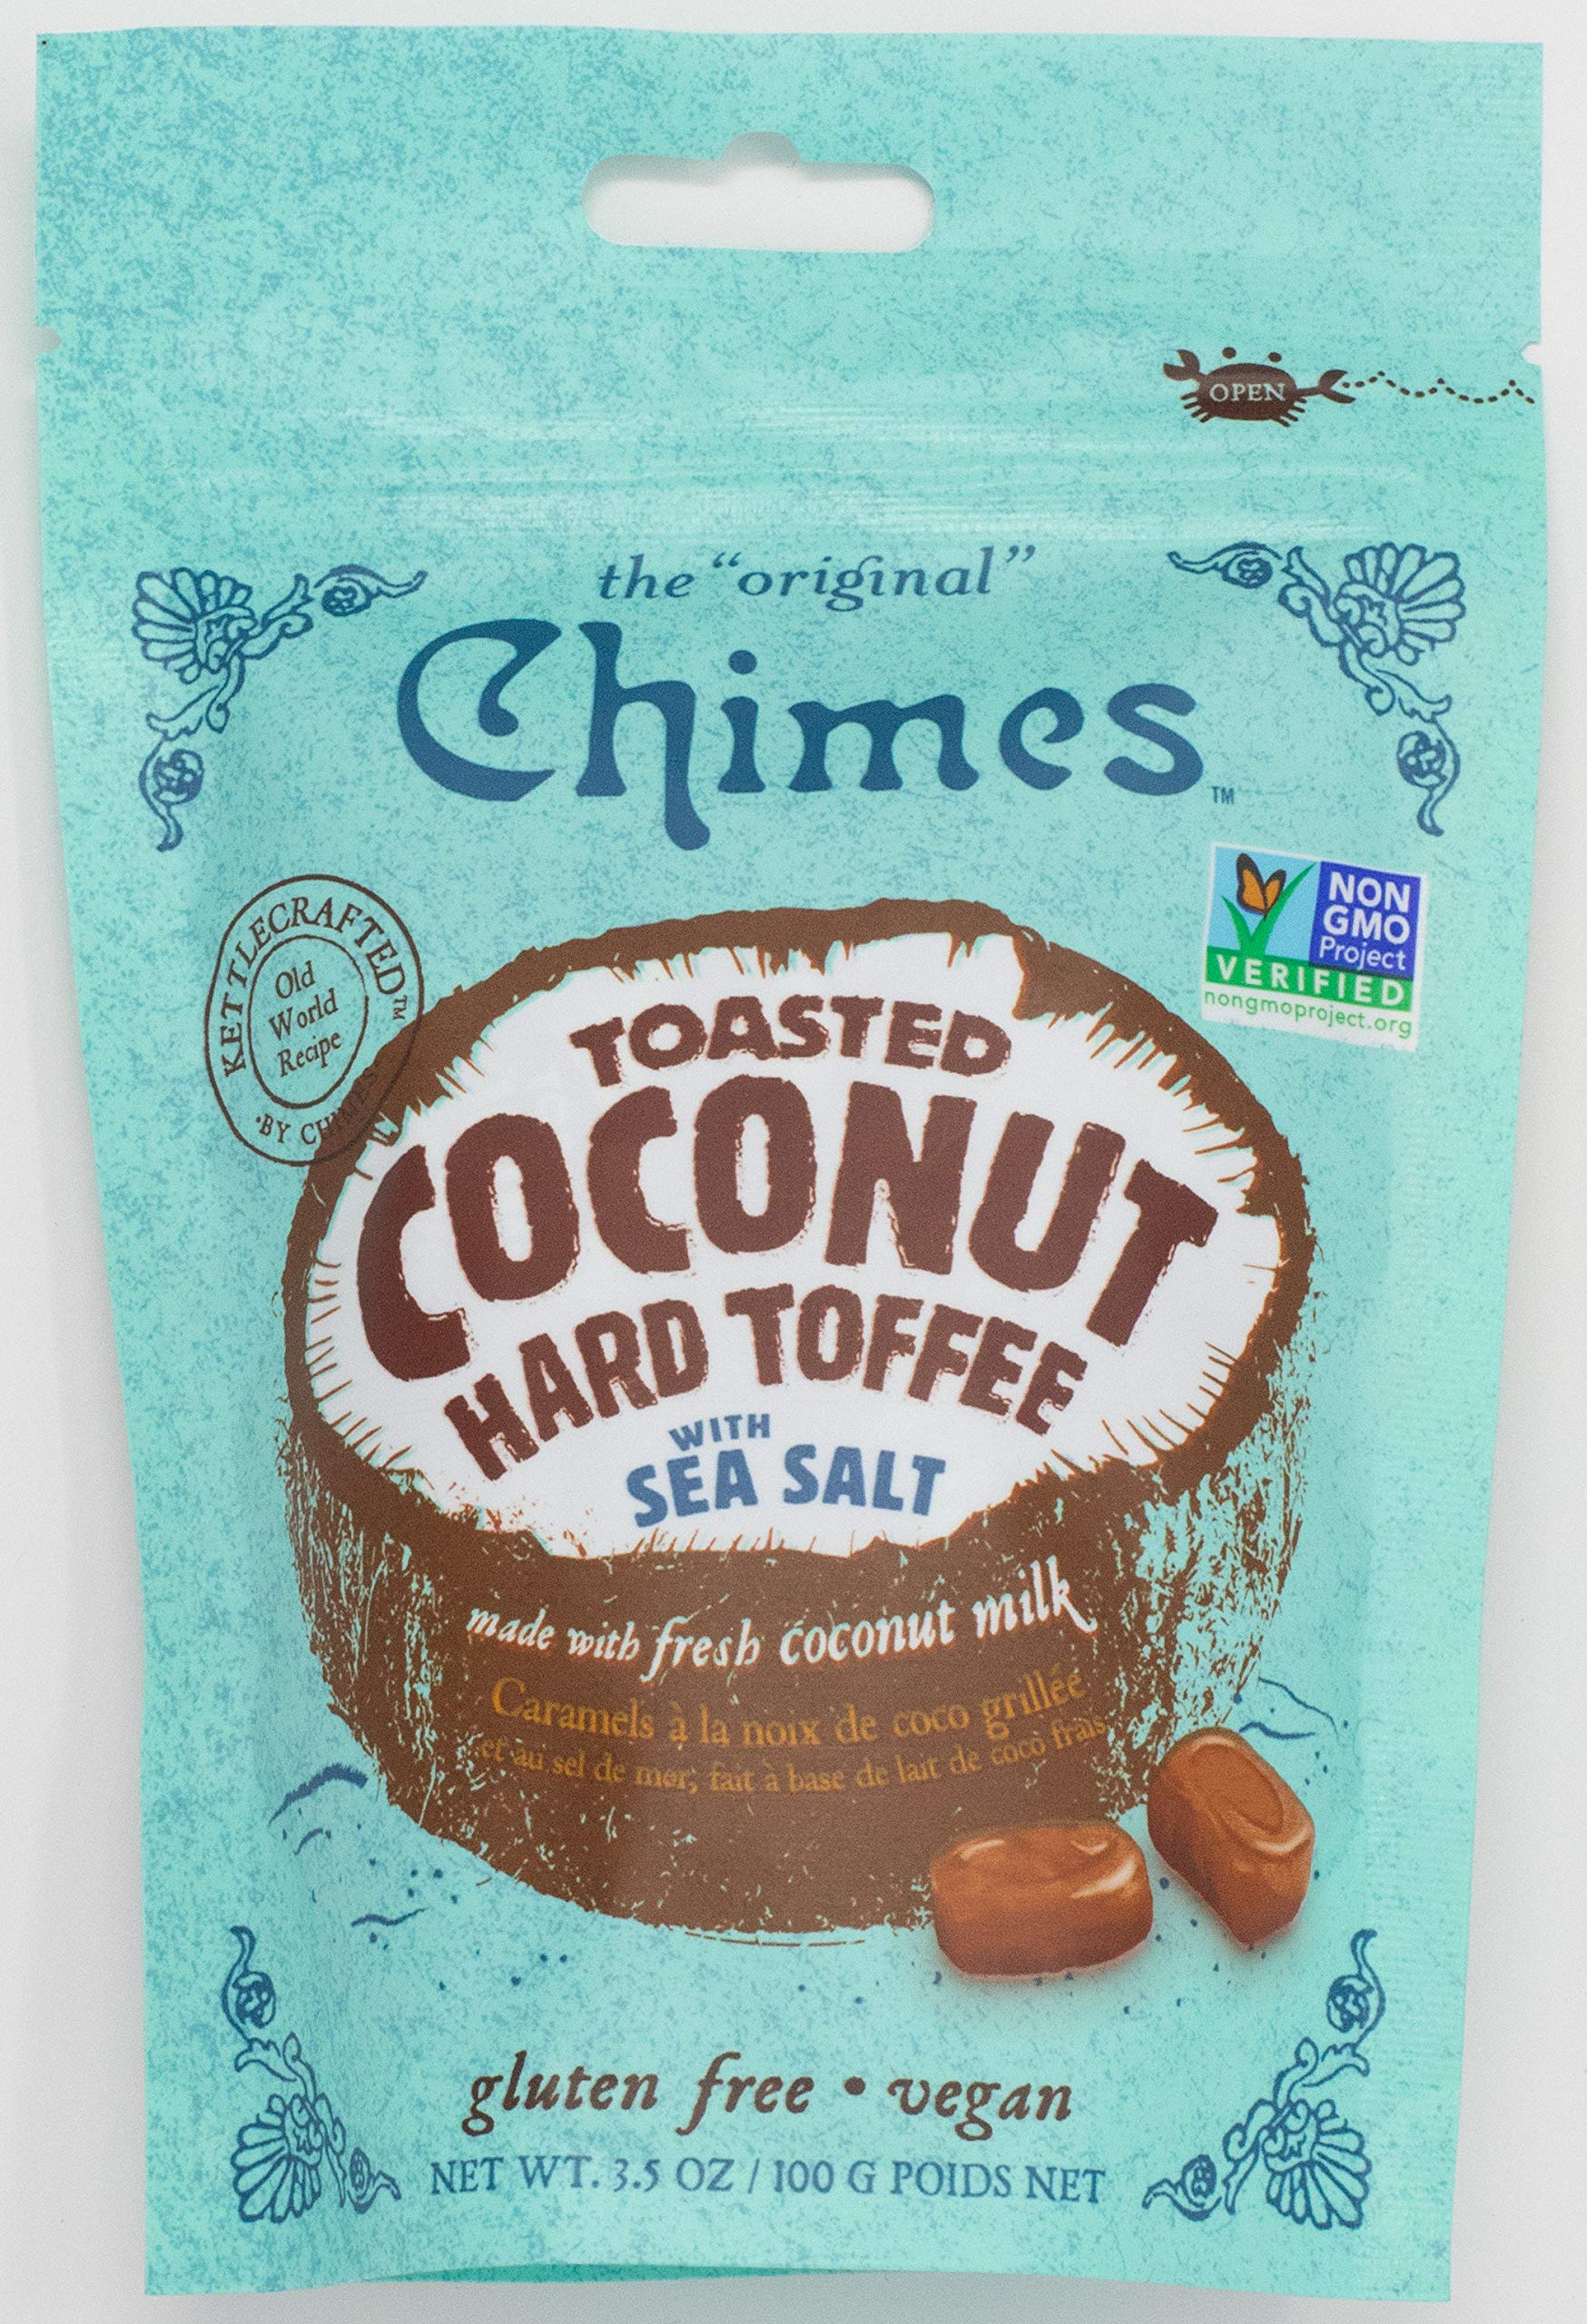 Chimes Toasted Coconut Toffee with Sea Salt, 3.5 Ounce (Pack of 12) by Chimes